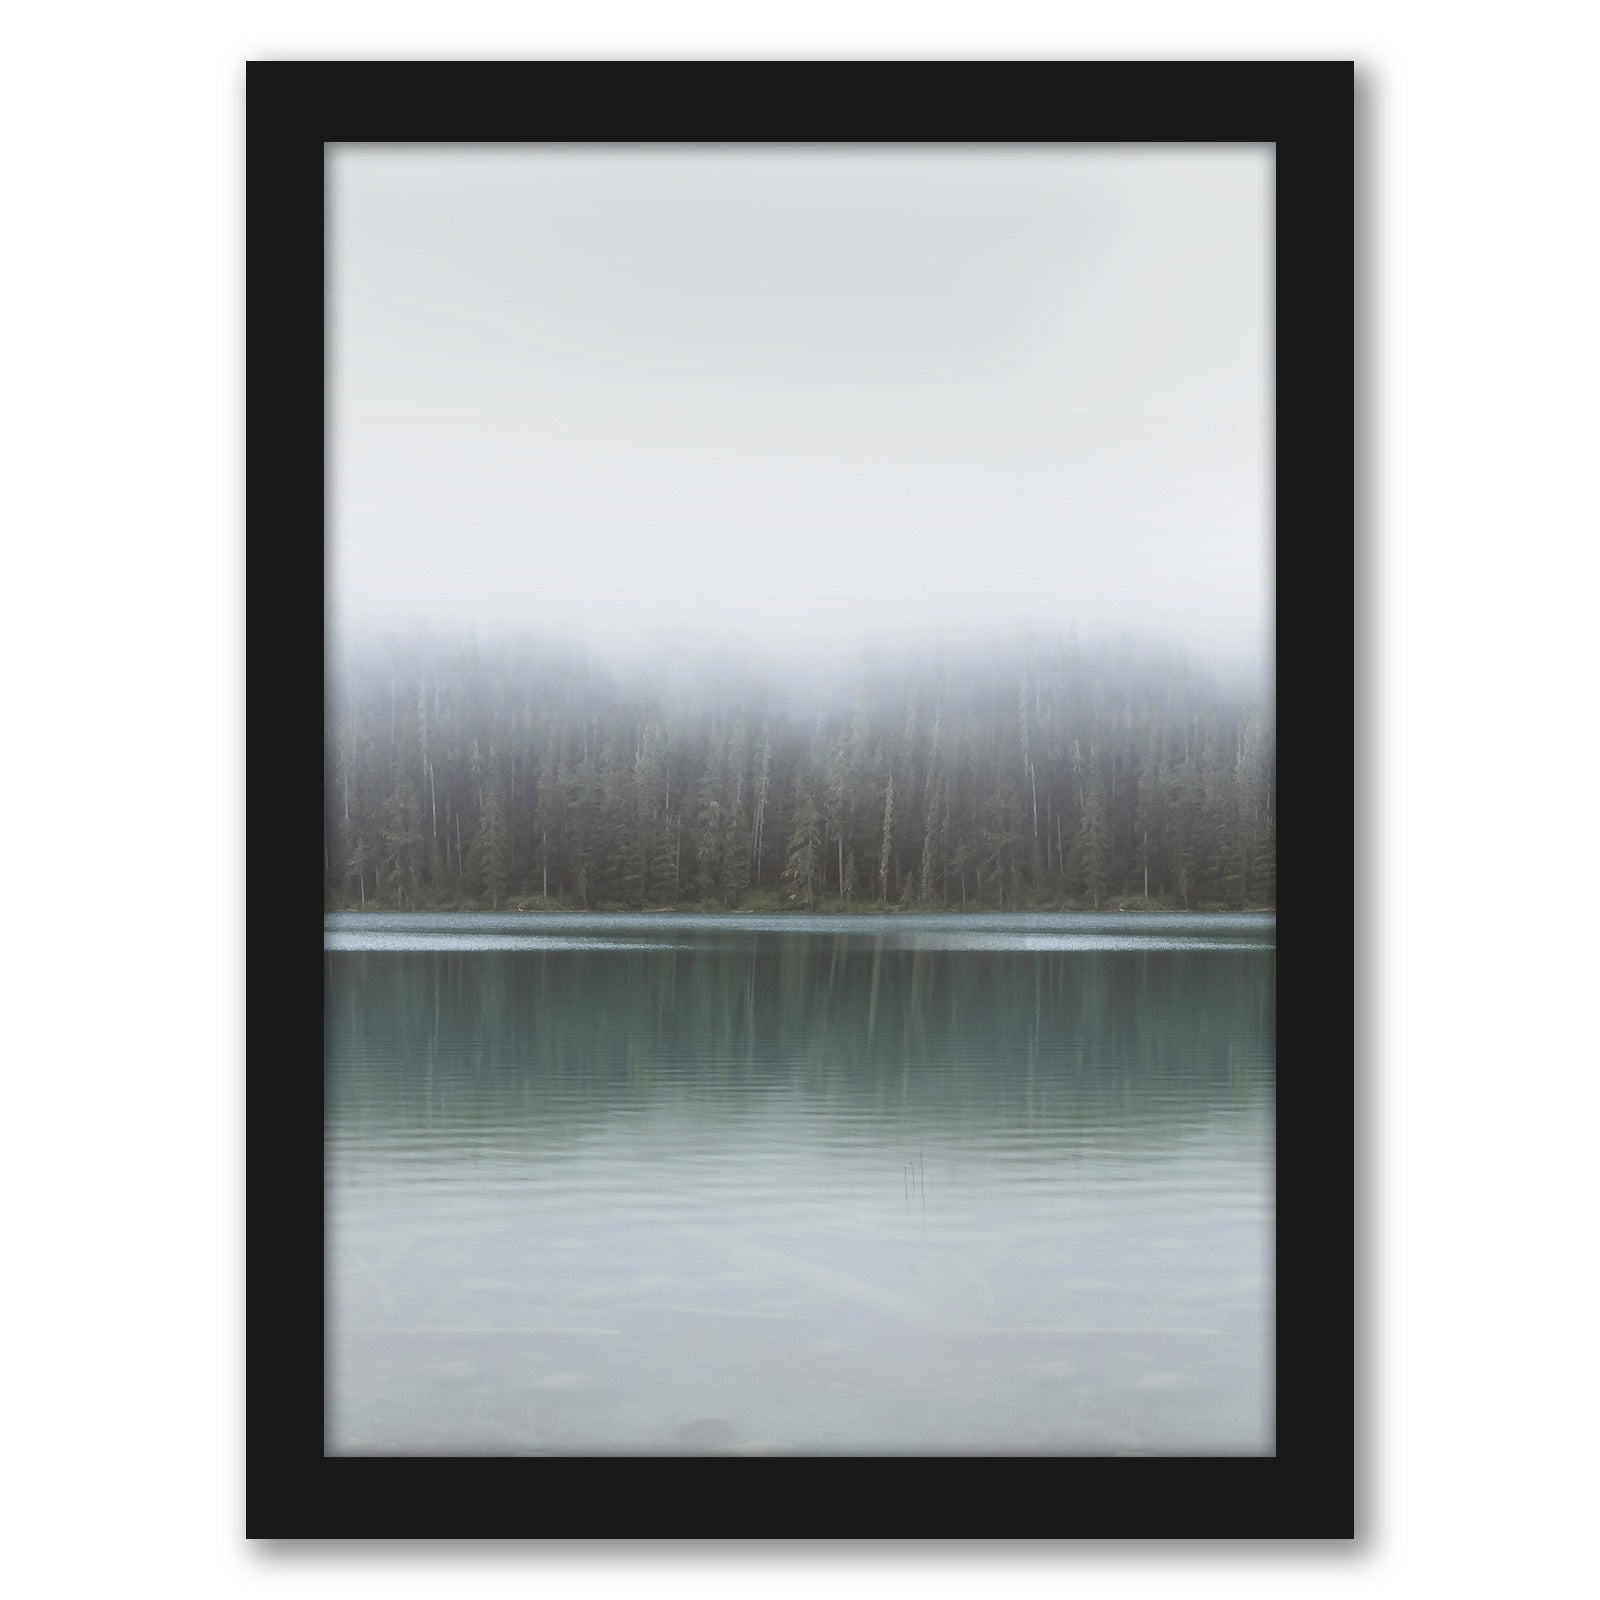 "Winter Lake by Tanya Shumkina - Black Framed Print, Wall Art, Tanya Shumkina, 8"" x 10"""